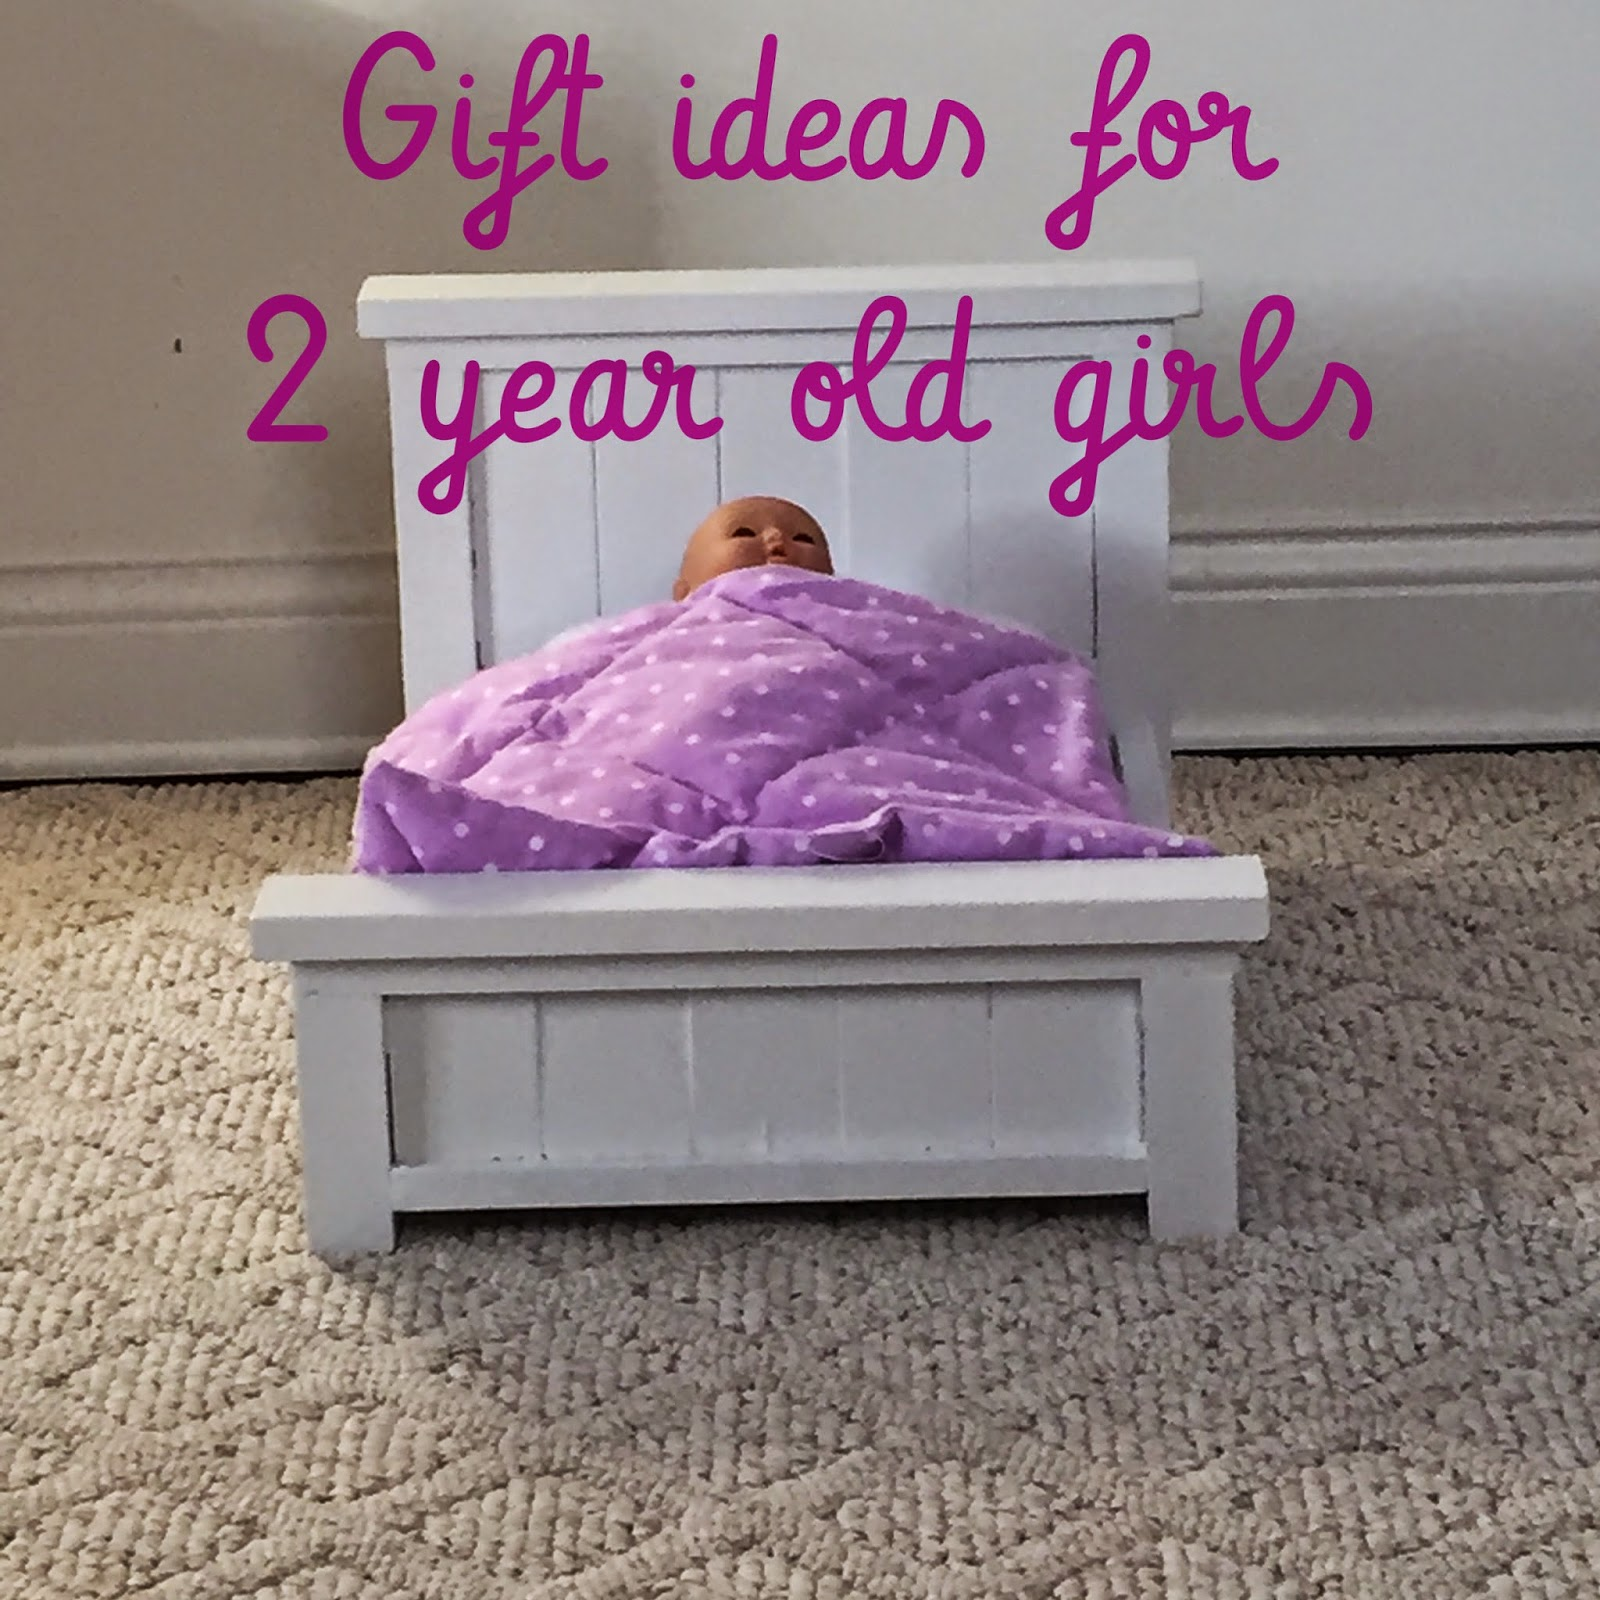 Our Delicious Life Gift Ideas for 2 Year Old Girls